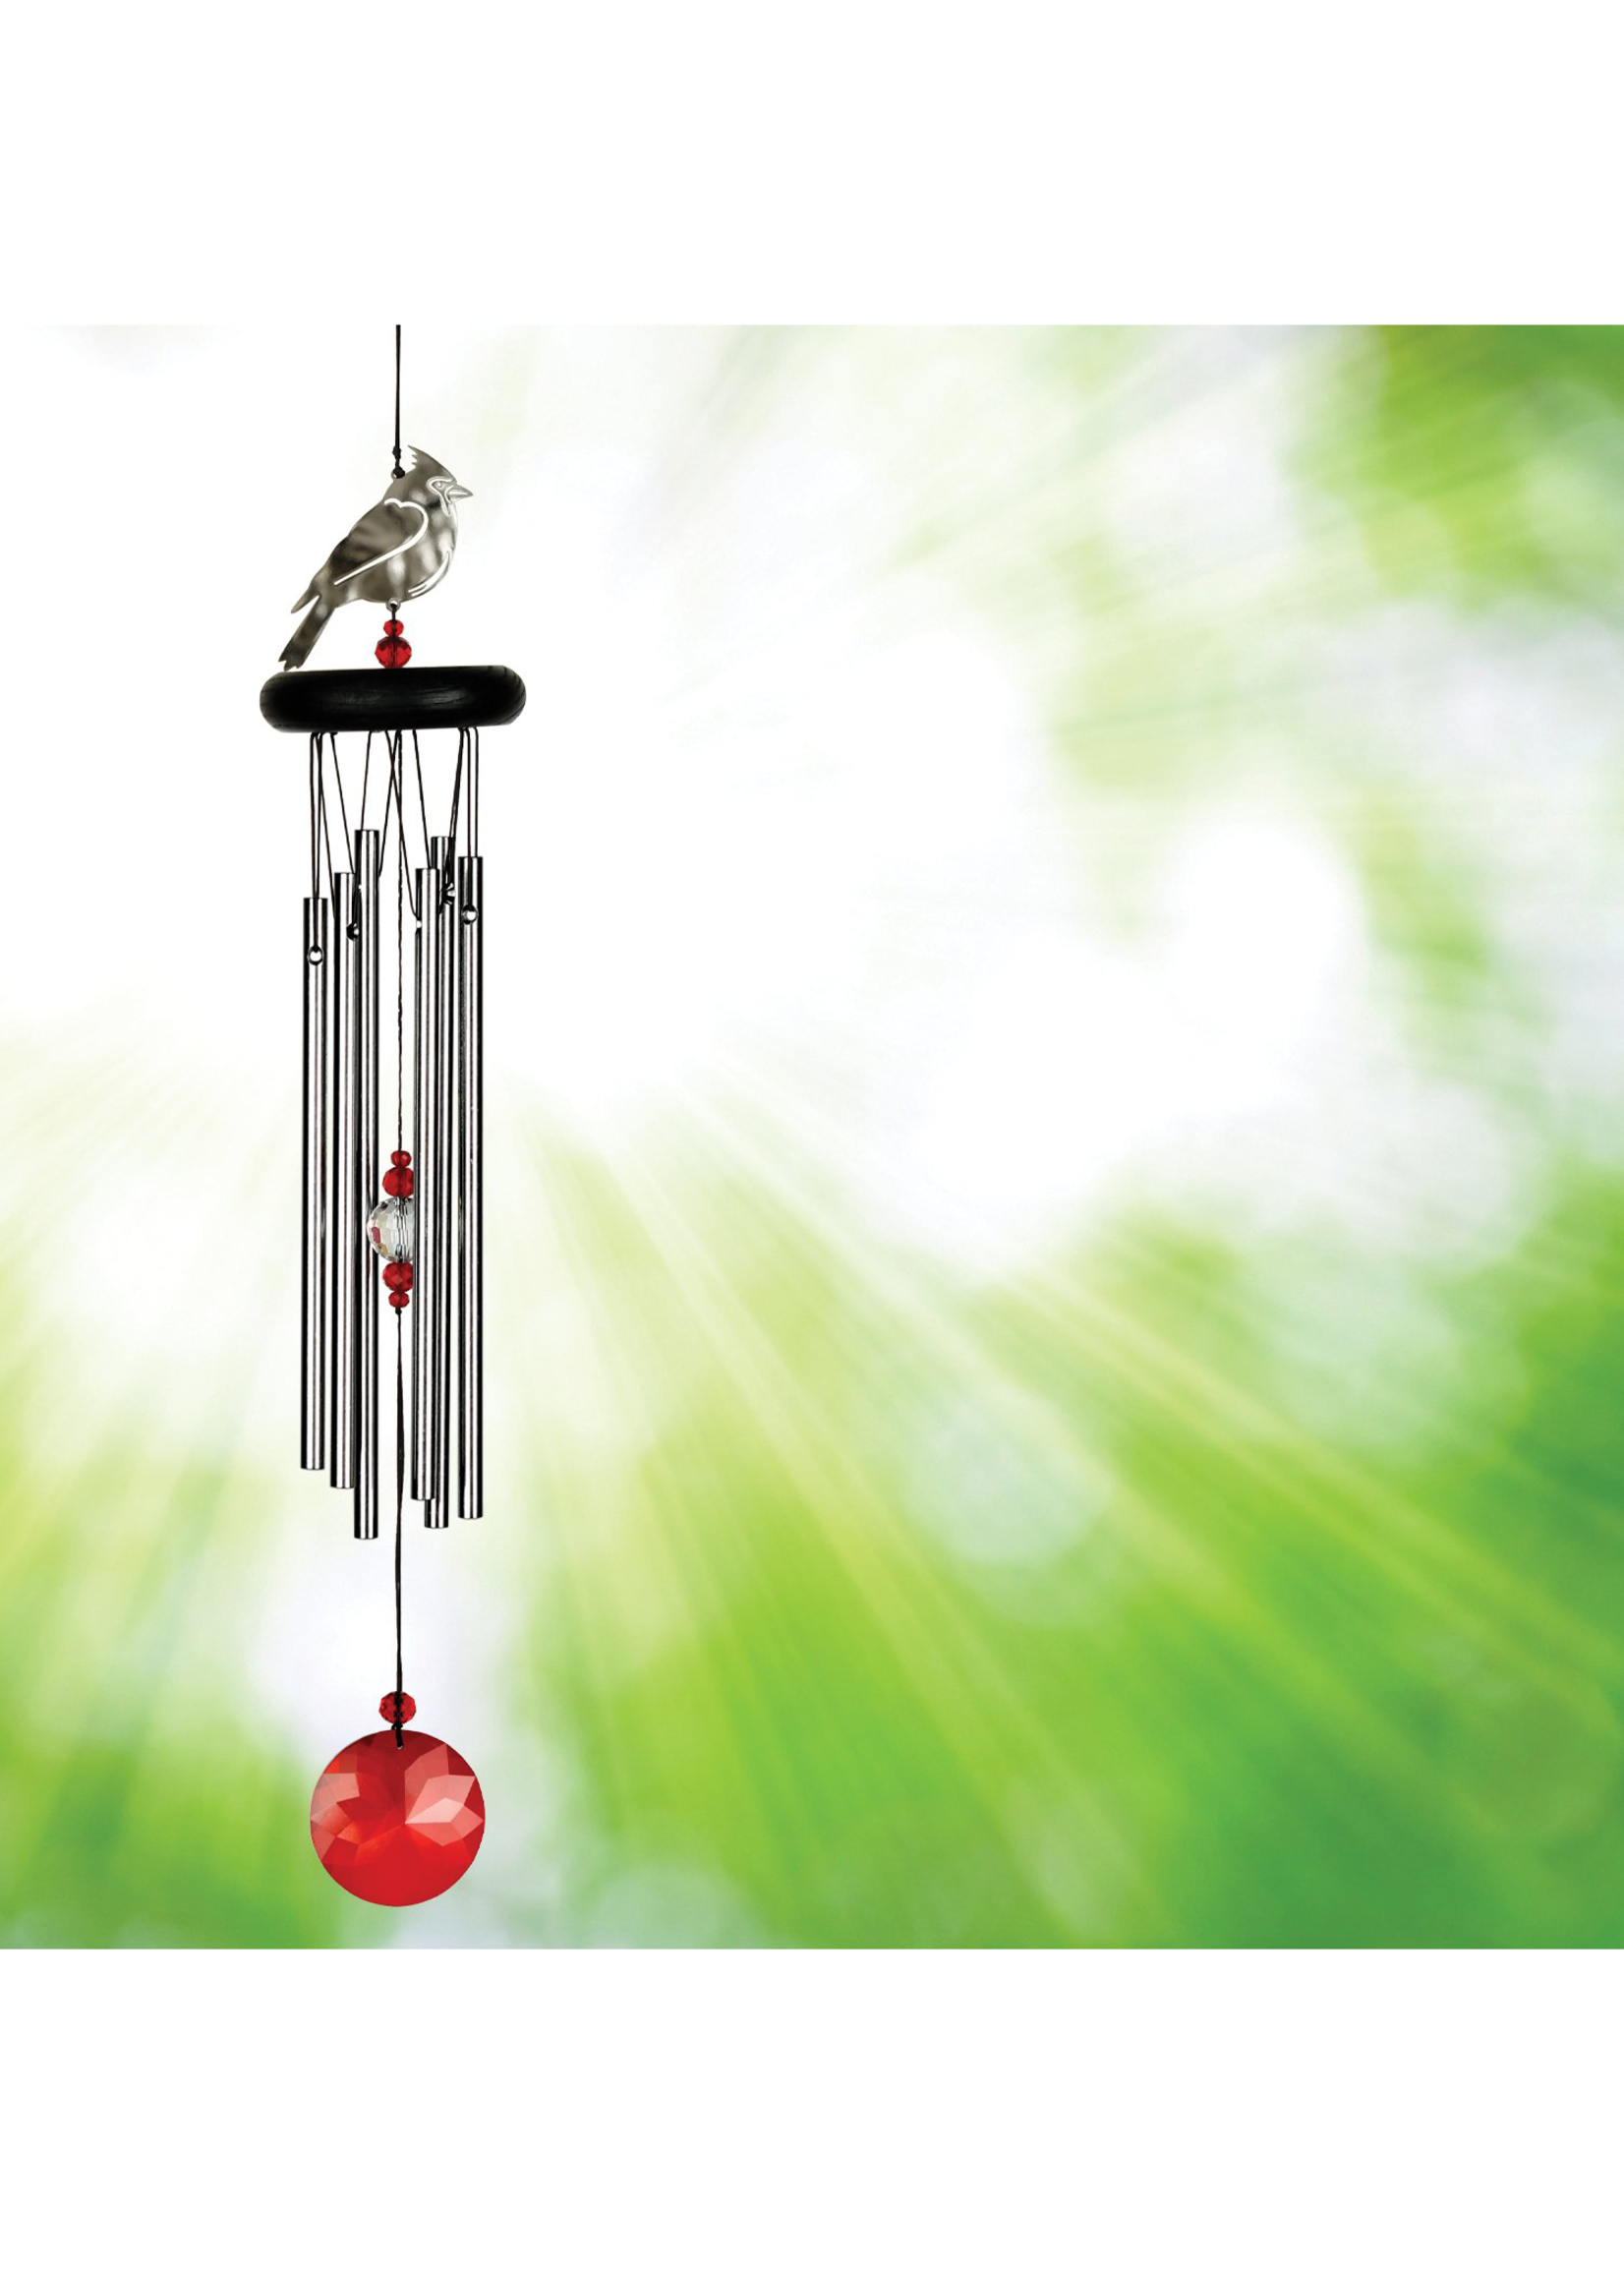 Woodstock Chimes Crystal Chime, Cardinal